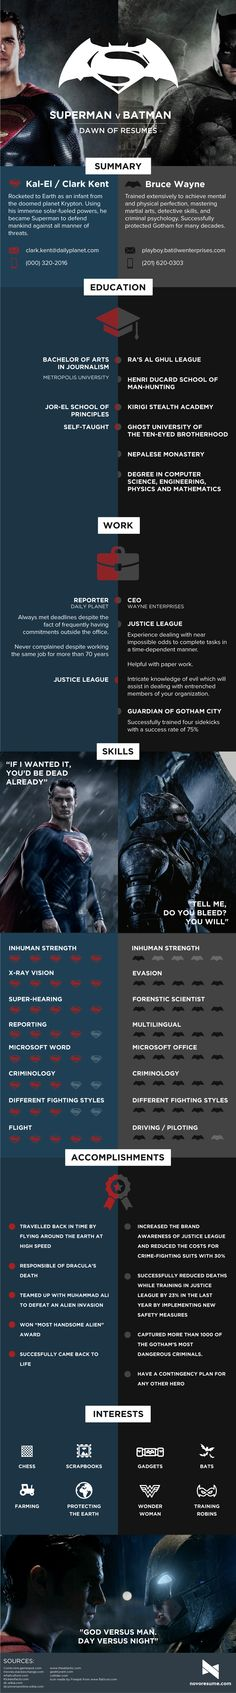 "These are the unbeatable superhero resumes of ""Batman v Superman."" Which side are you on? #batman #superman #resumes #dawnofjustice #comics #superheroes"